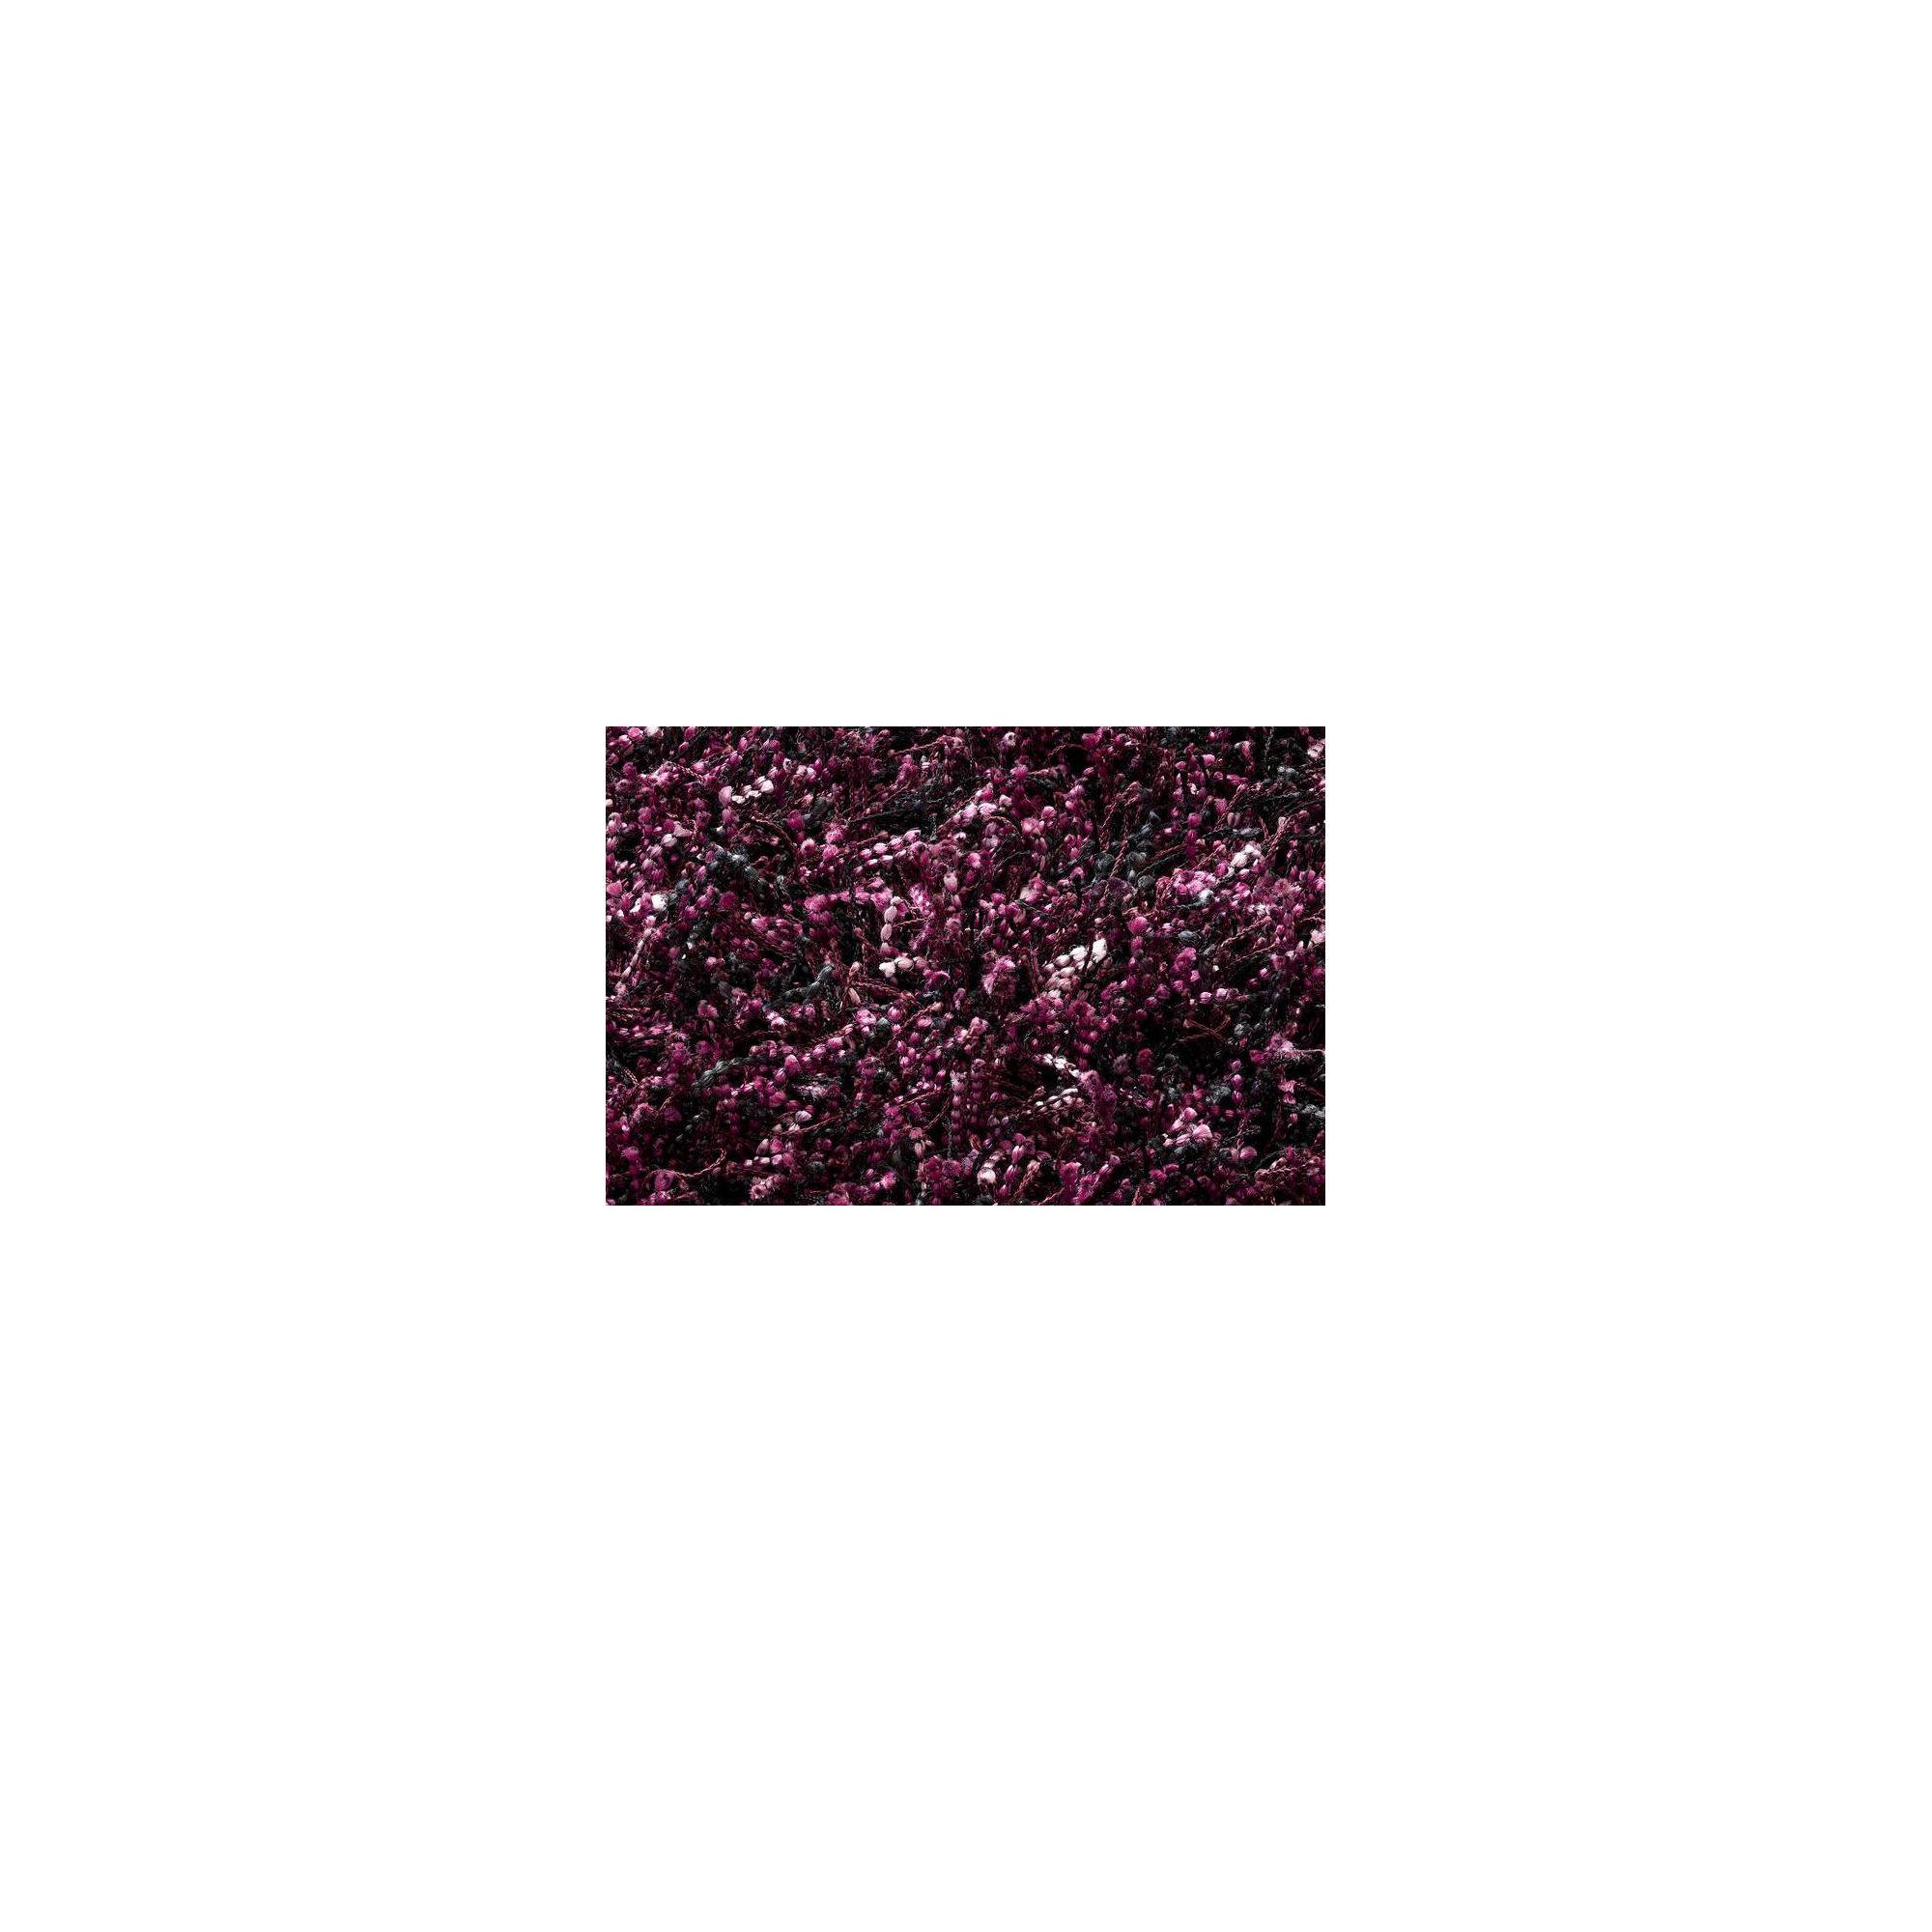 Linie Design Sprinkle Purple Shag Rug - 200cm x 140cm at Tescos Direct